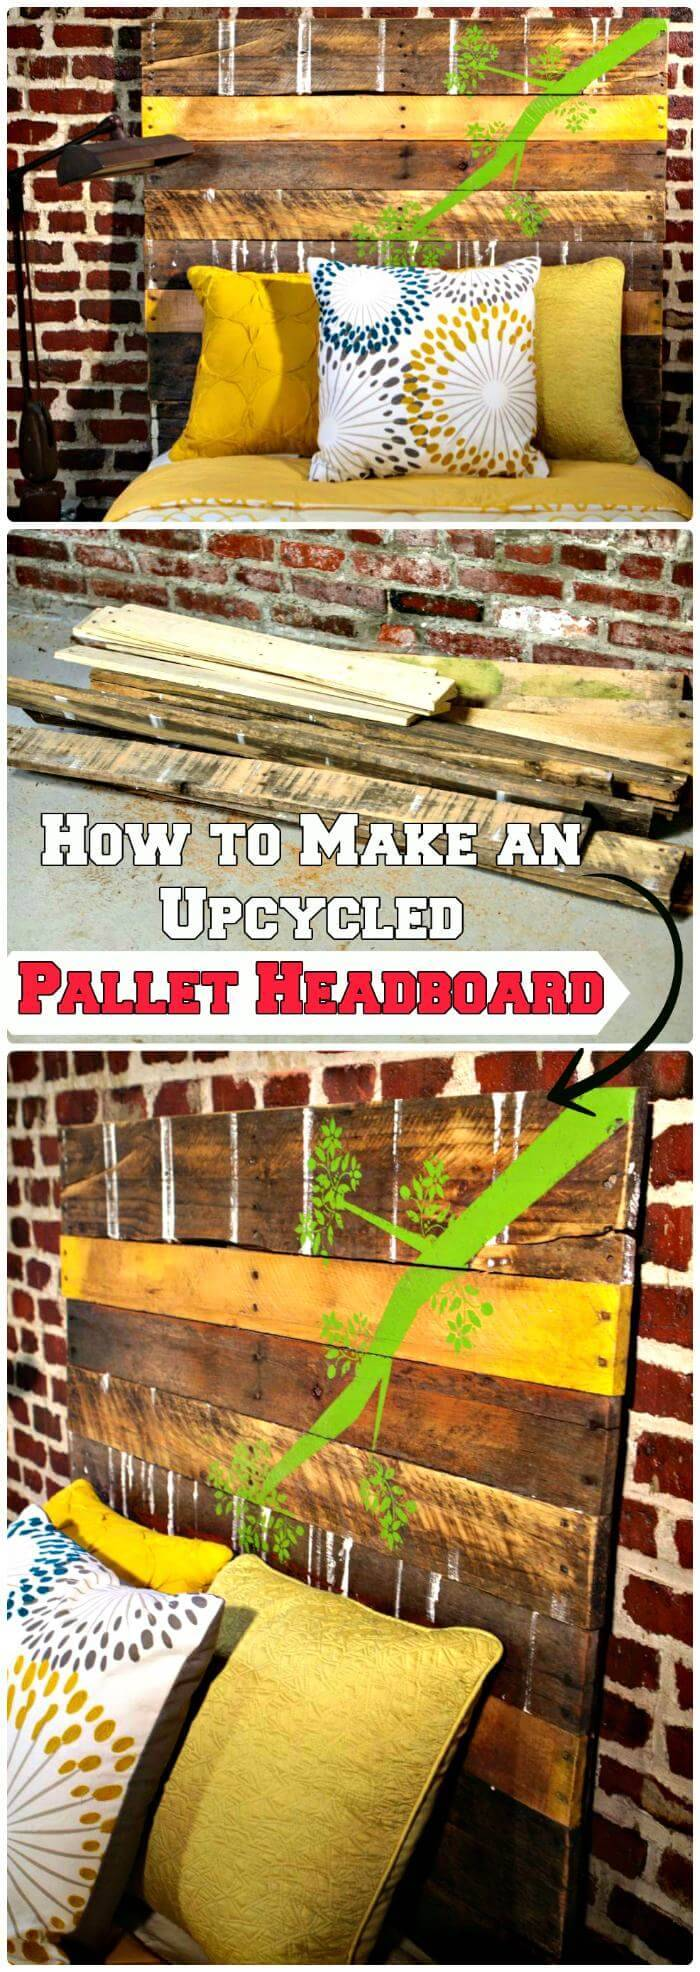 DIY Upcycled Pallet Headboard